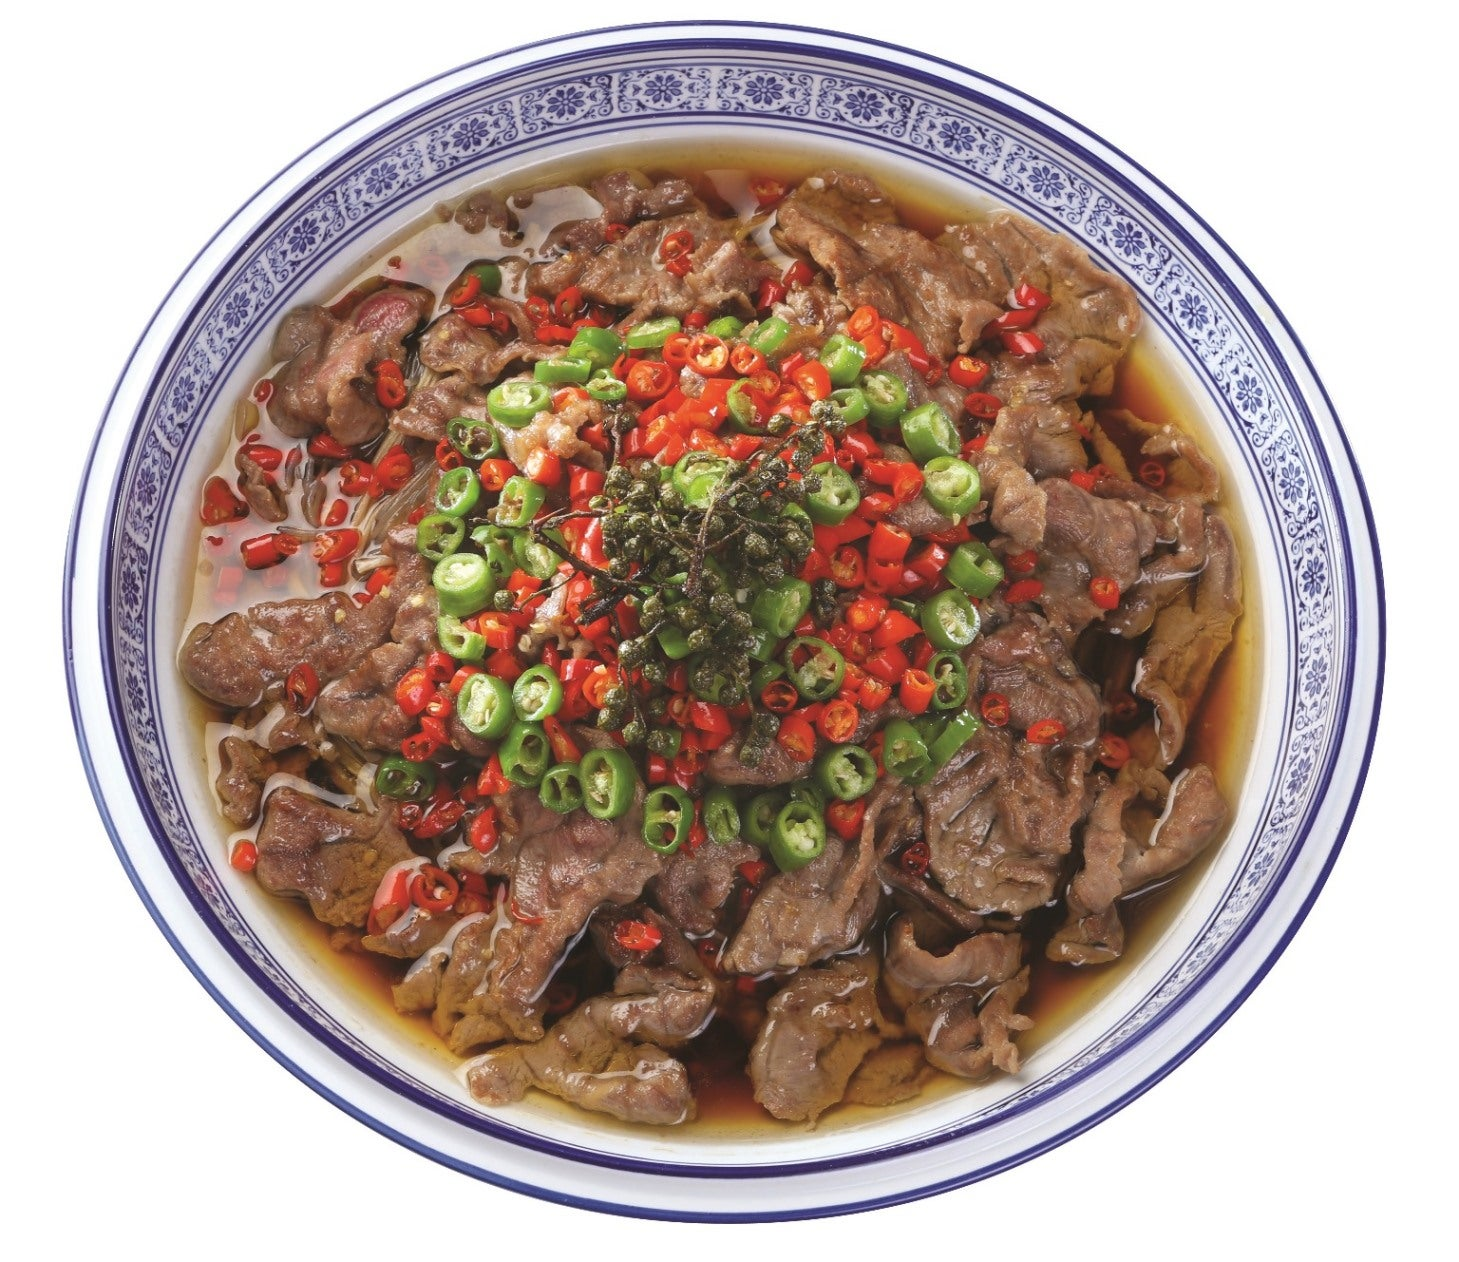 Sichuan Paradise 天府人家 delivery from Wanchai - Order with Deliveroo